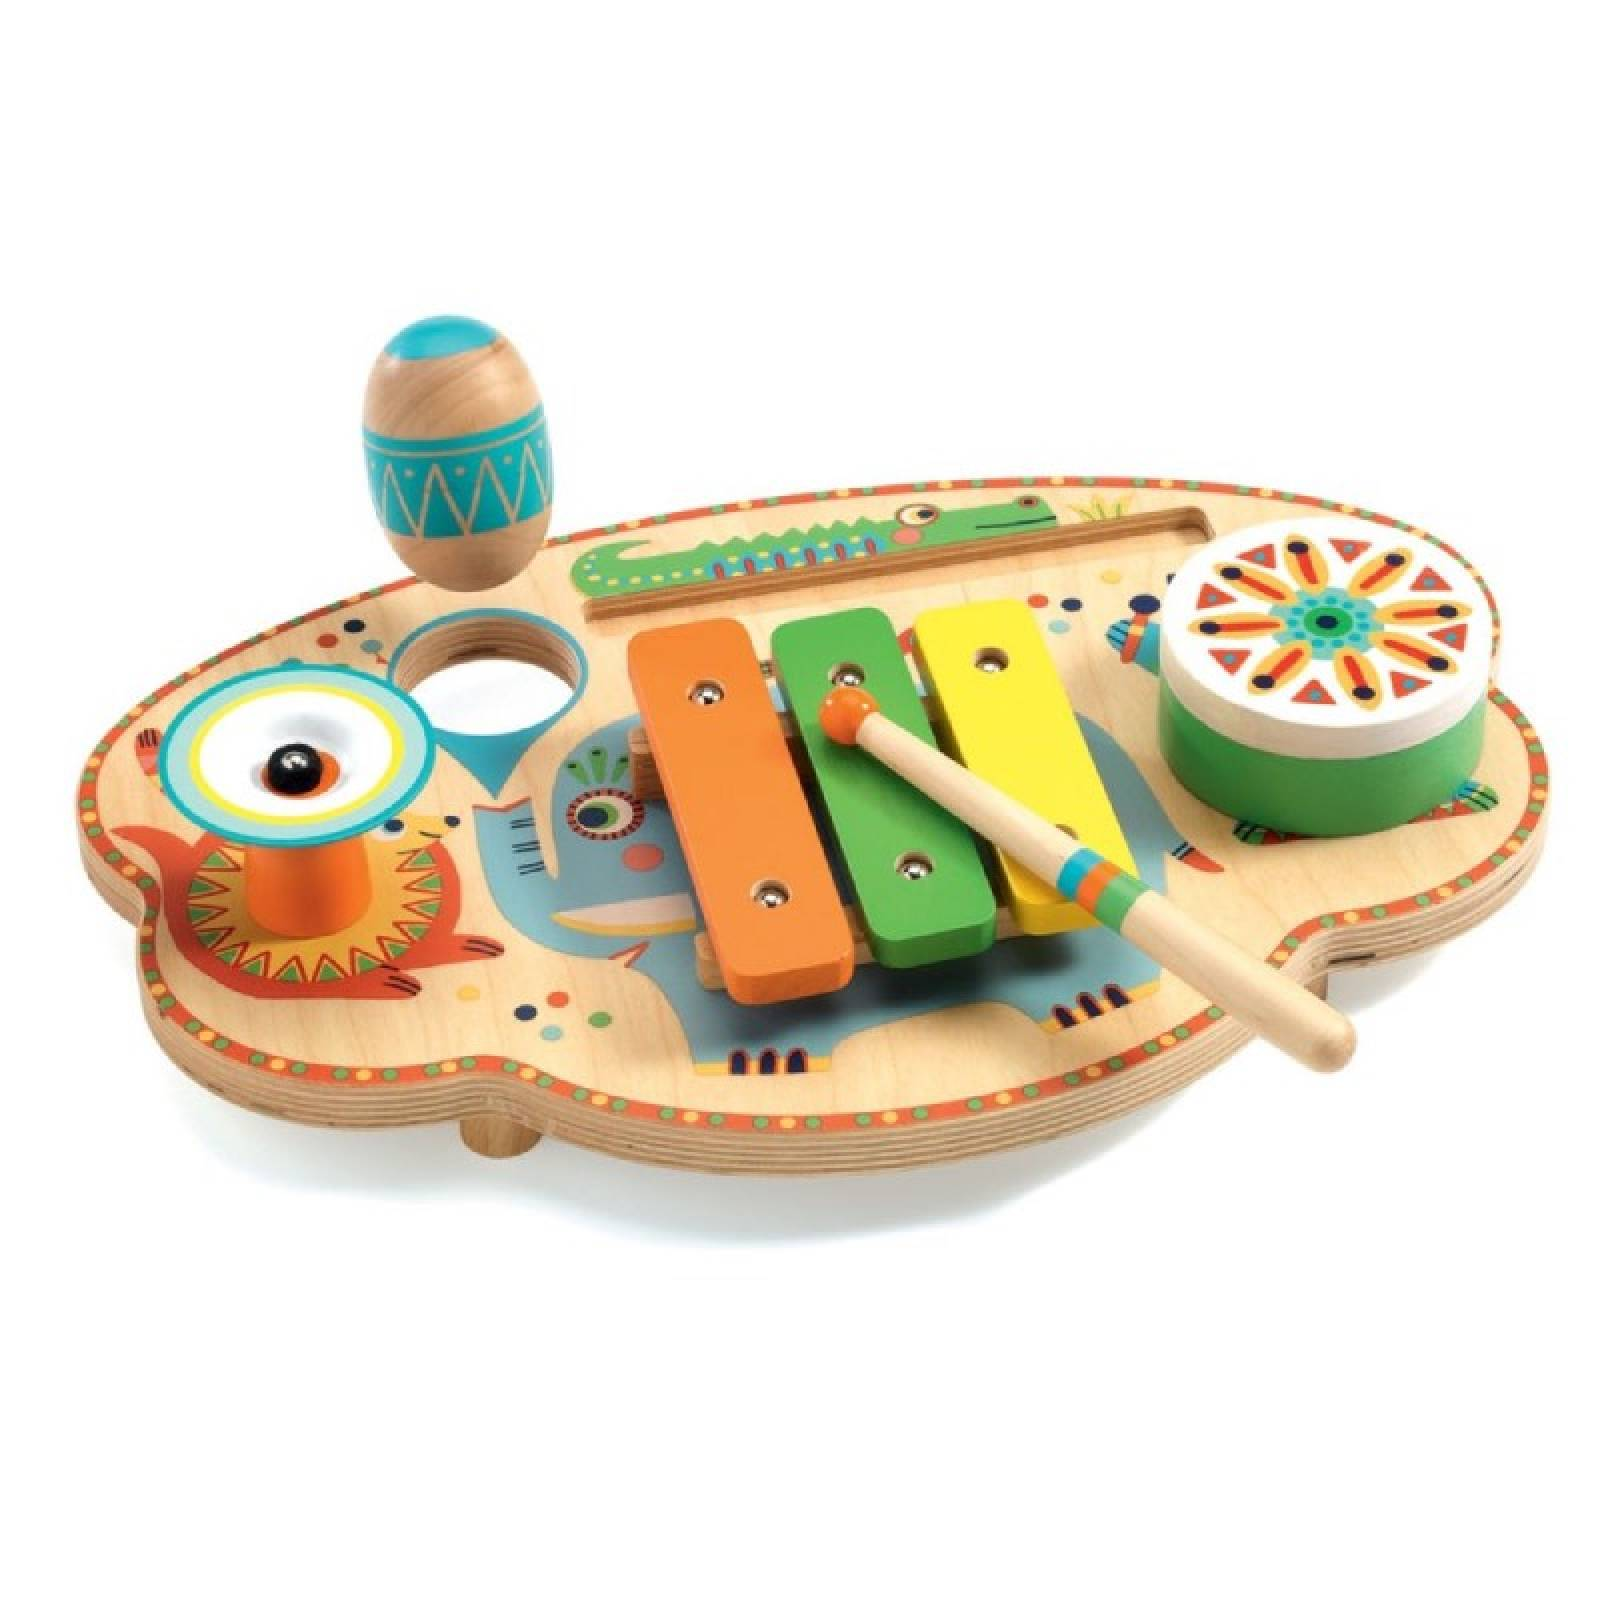 Animambo Musical Carnival Instrument Set By Djeco 2+